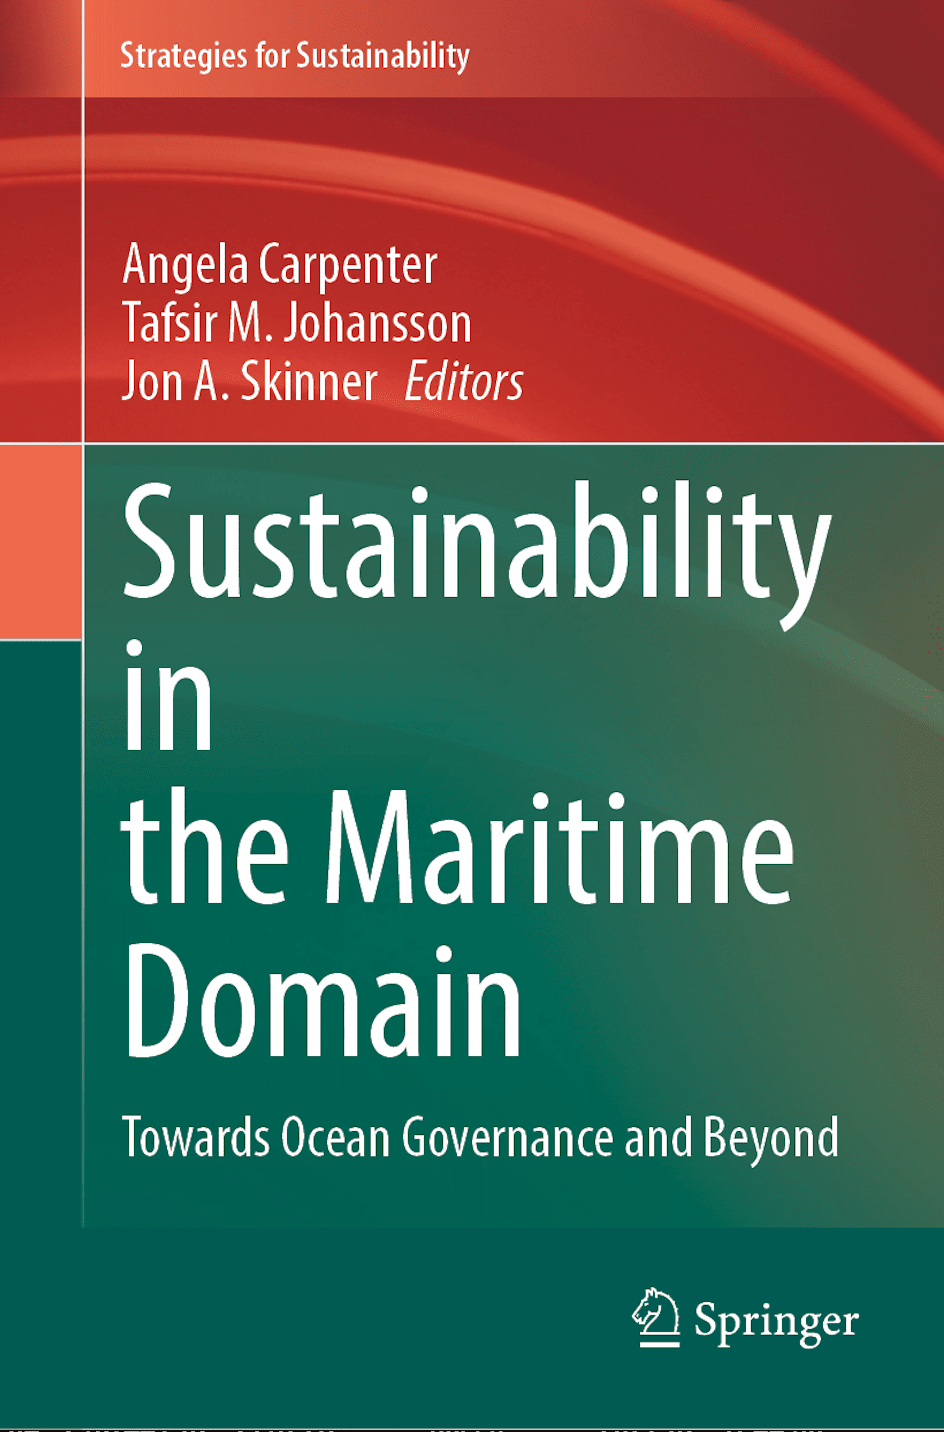 Sustainability in the Maritime Domain